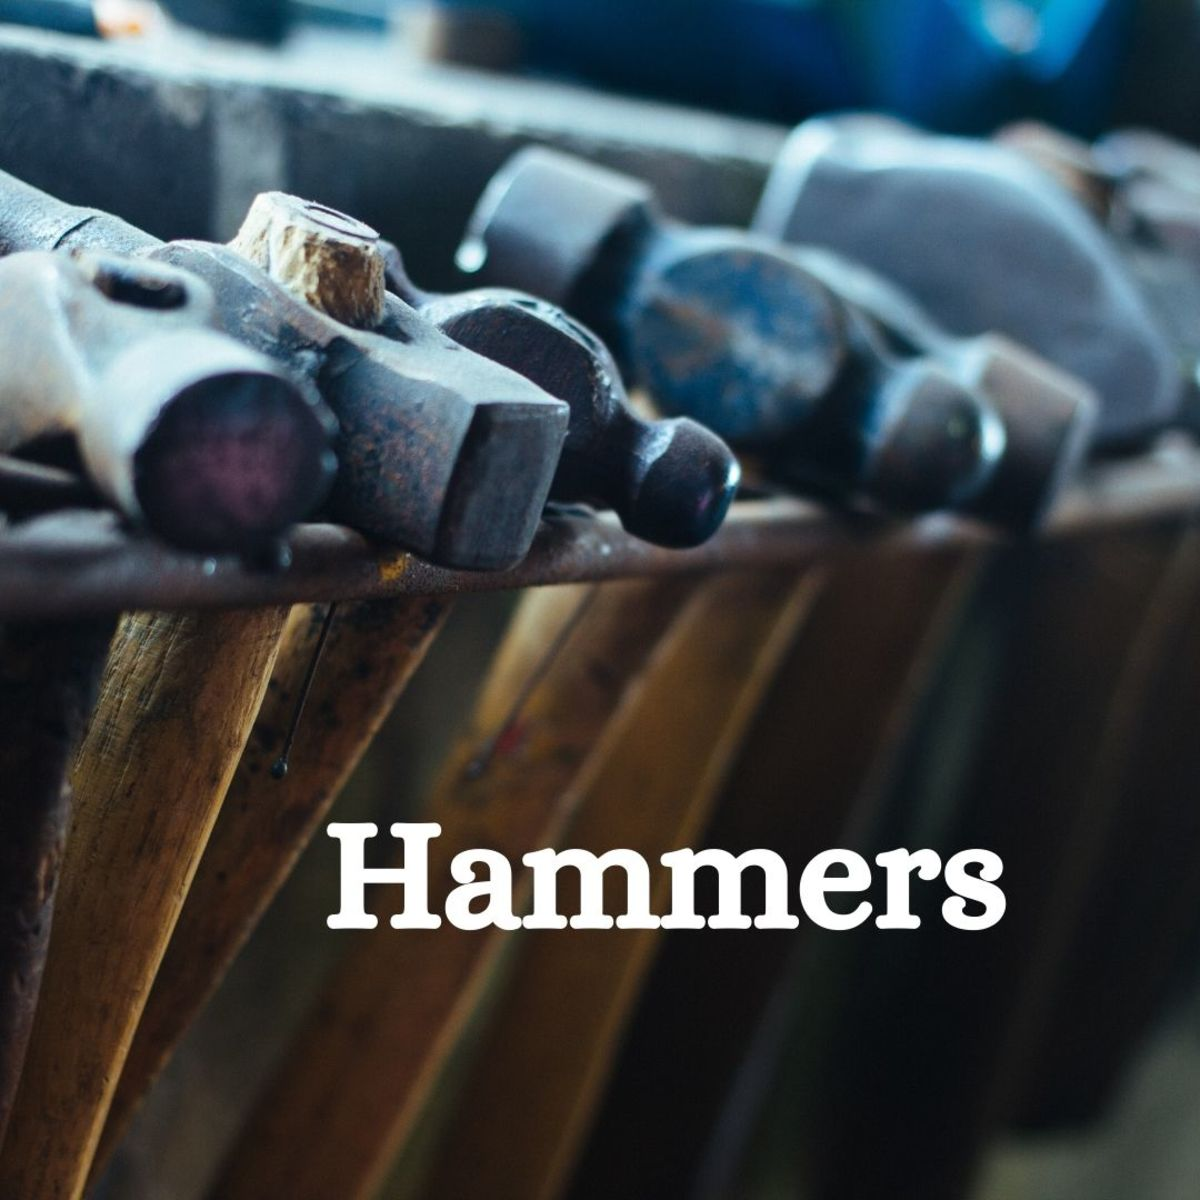 Hammers are a fun and useful tool to collect!